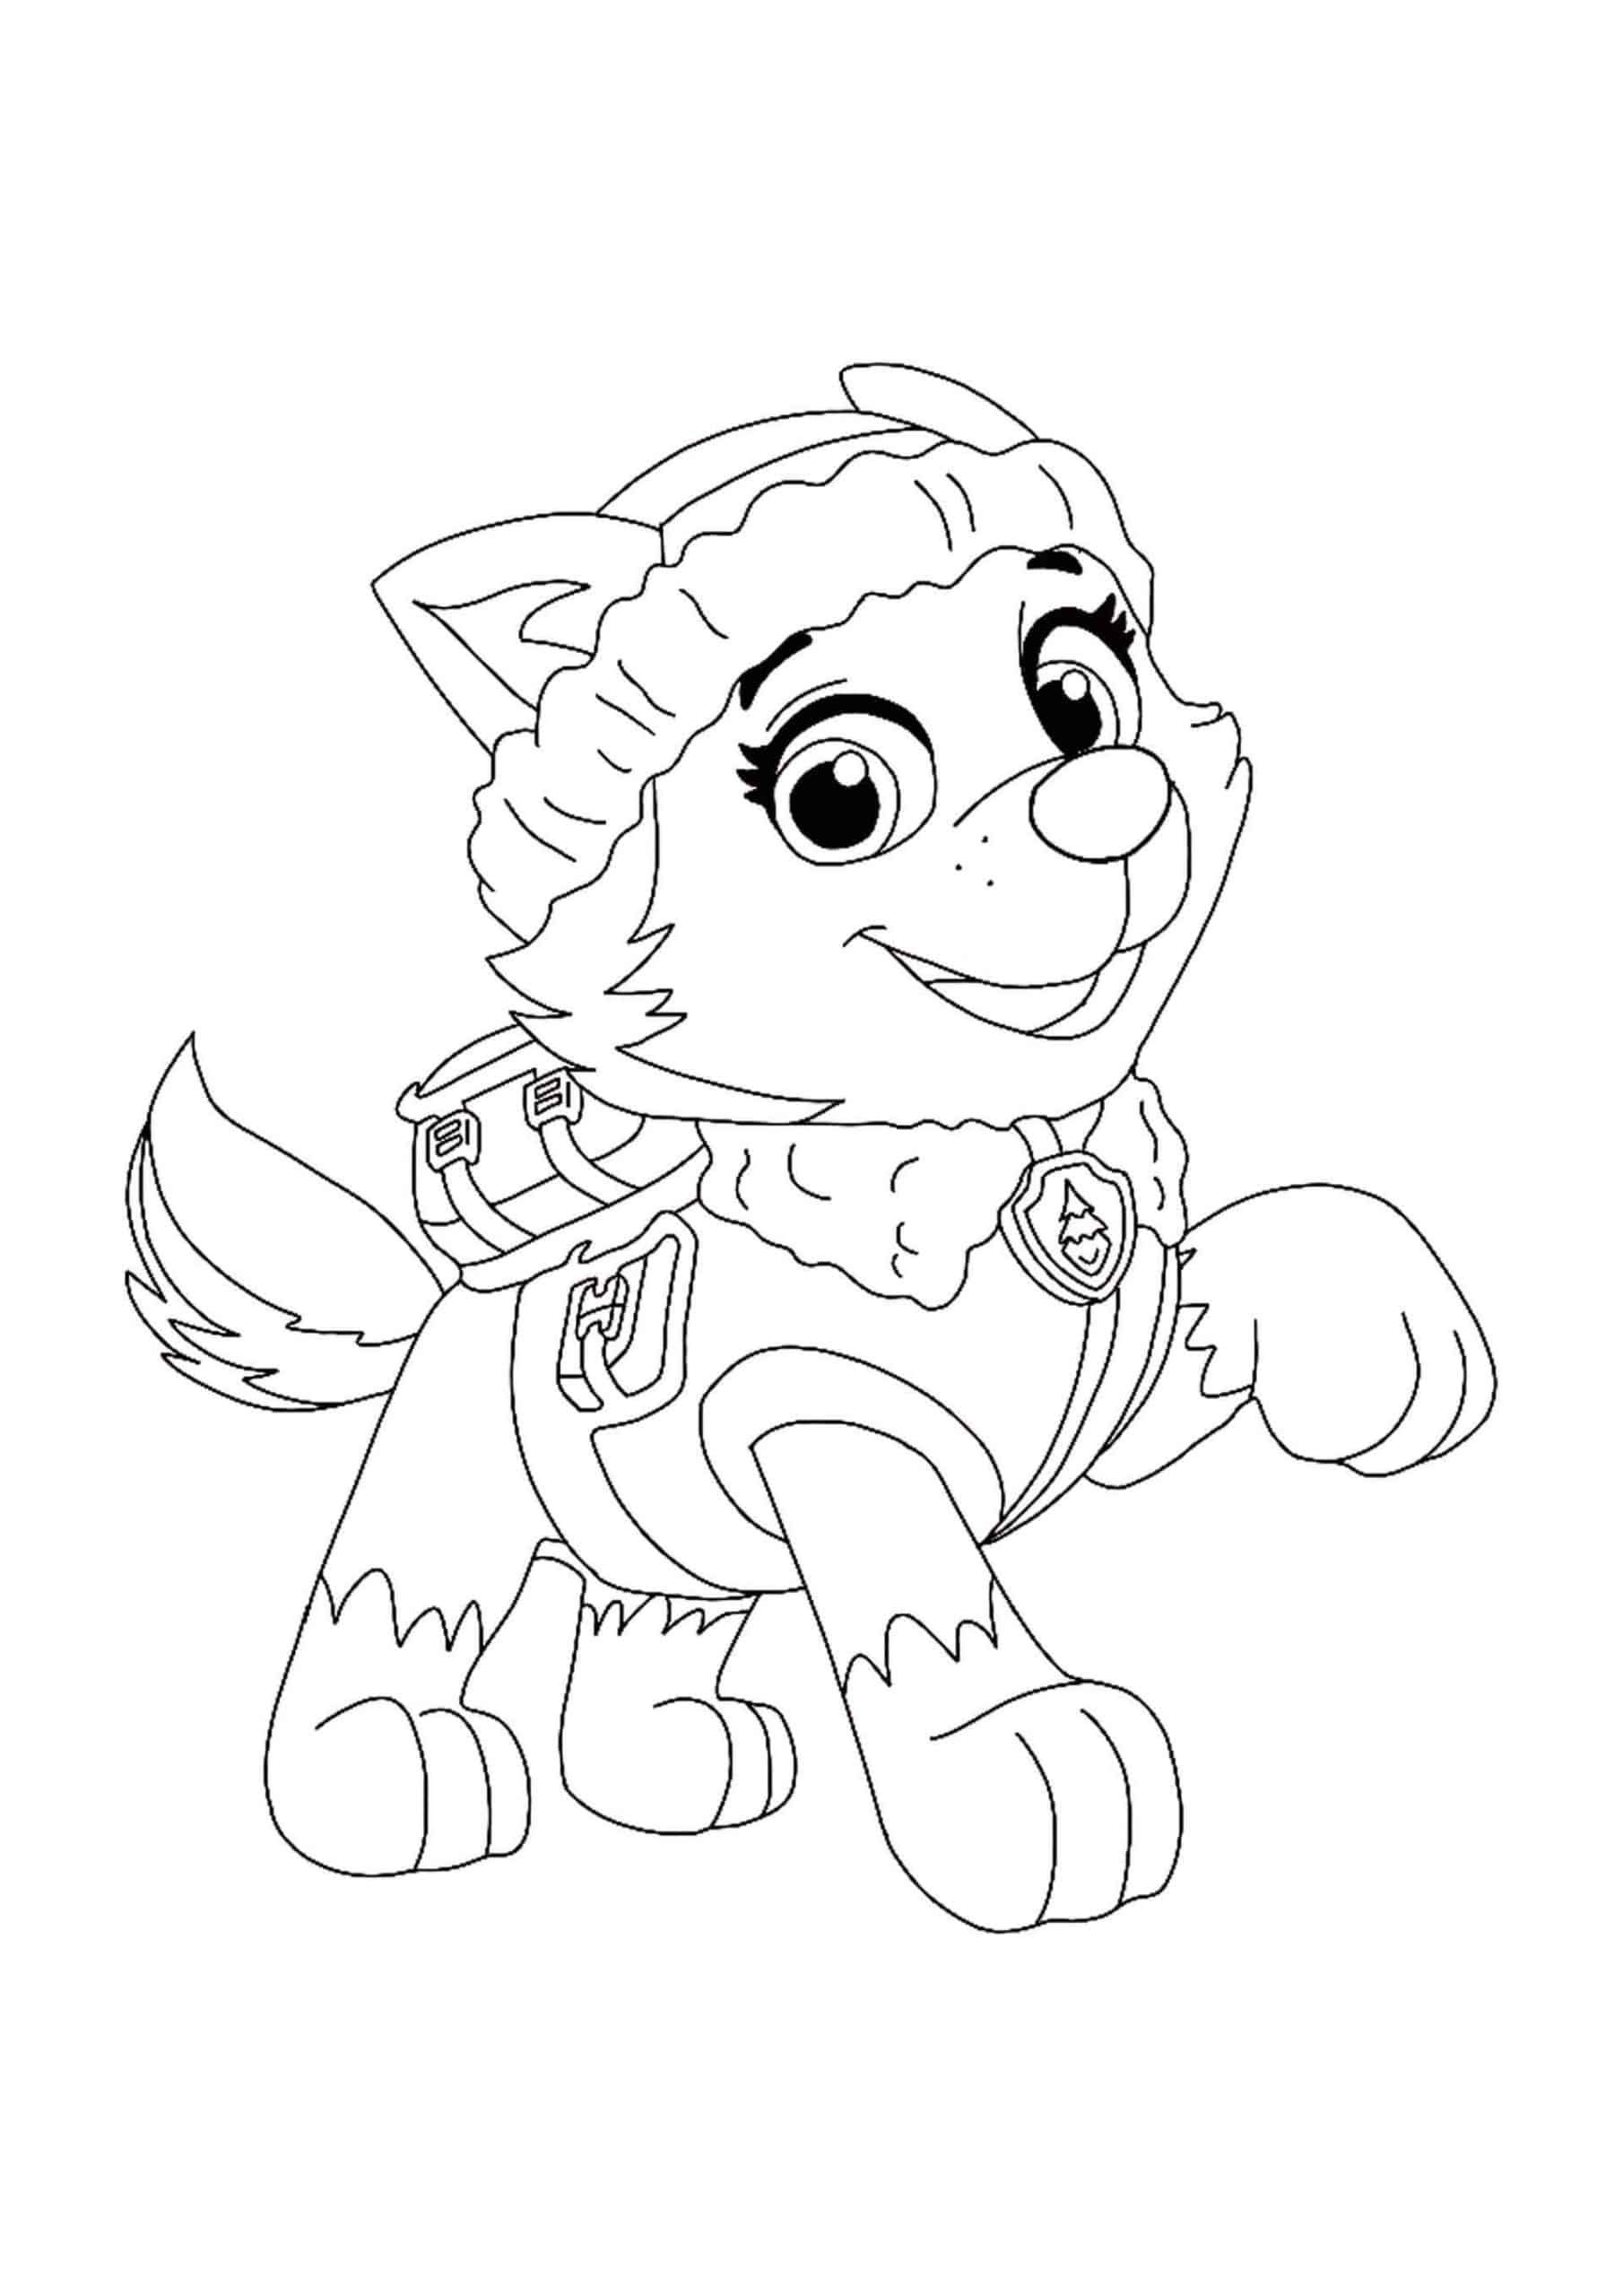 Paw Patrol Everest Coloring Sheet Paw Patrol Coloring Pages Paw Patrol Coloring Everest Paw Patrol